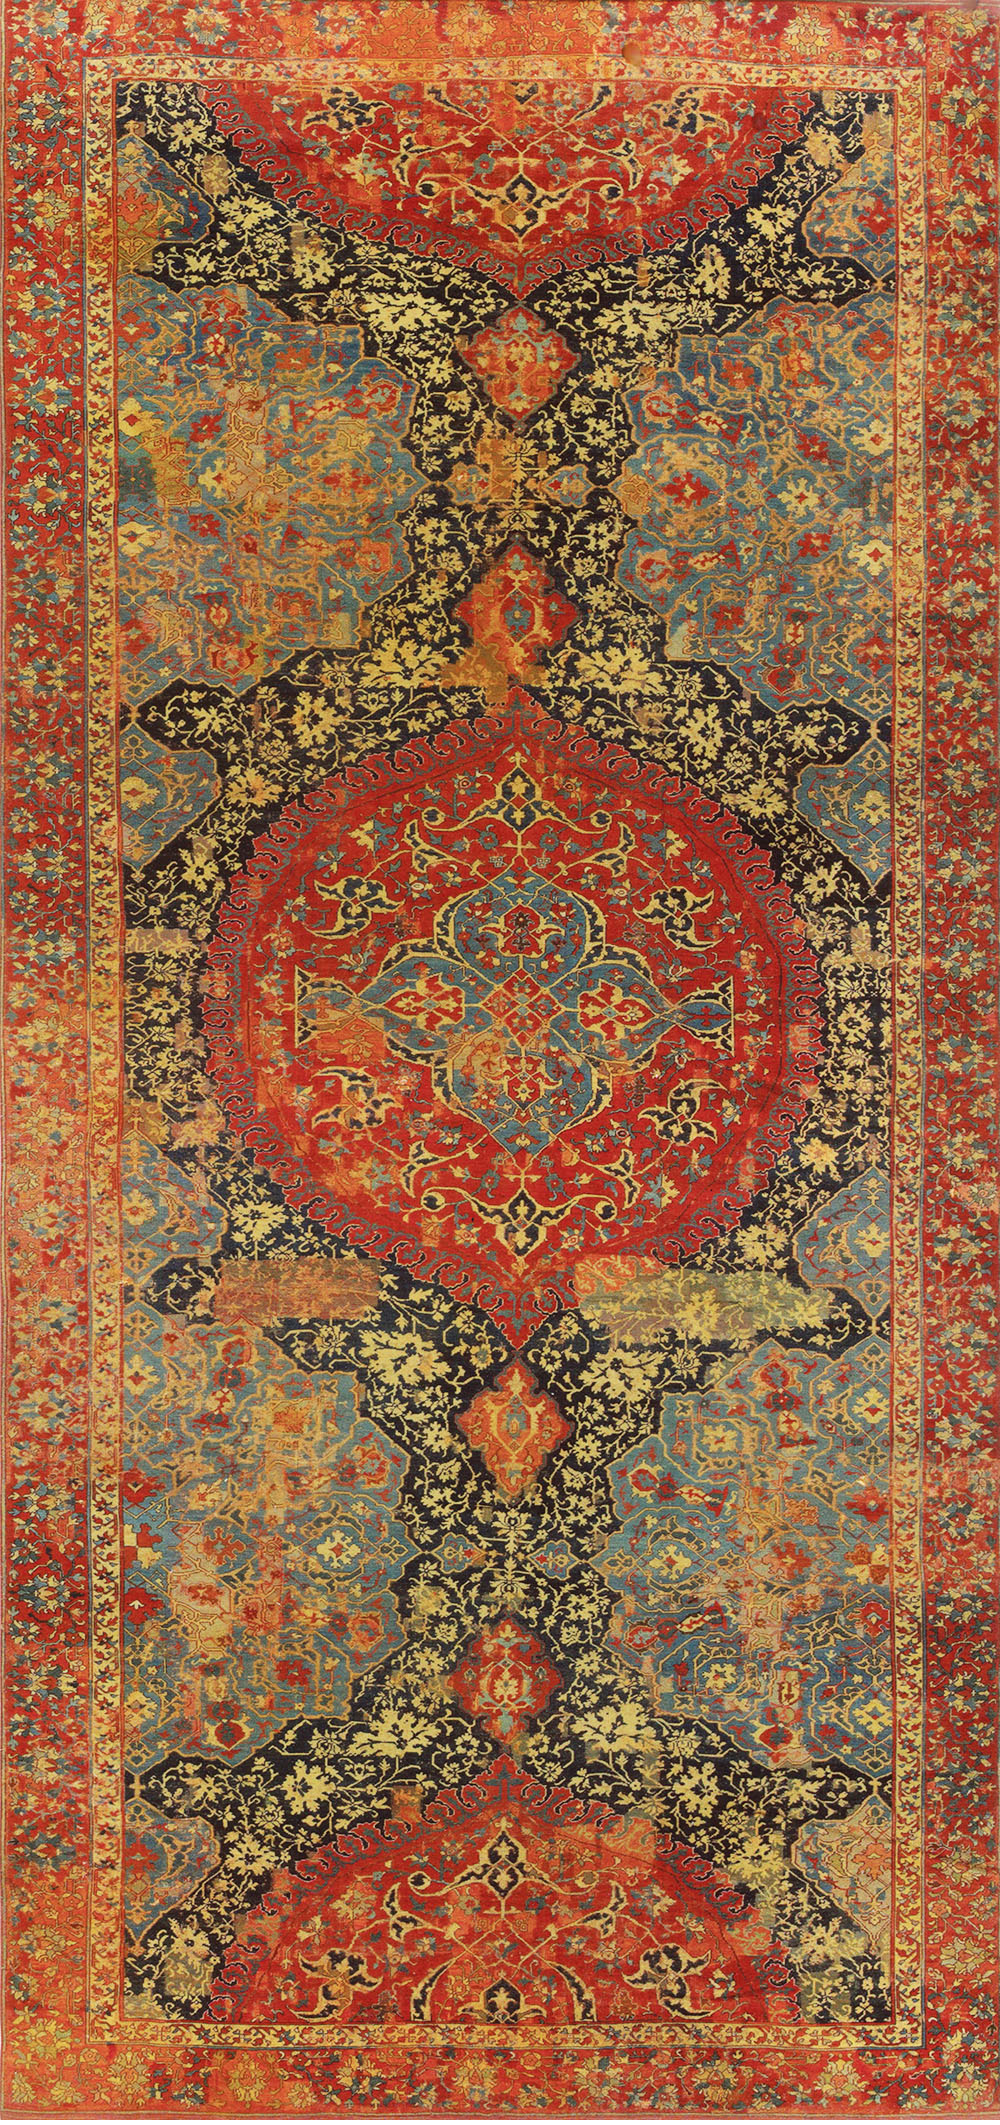 The carpet as it appeared in the 1932 Benguiat sale, unchanged when exhibited in 2006